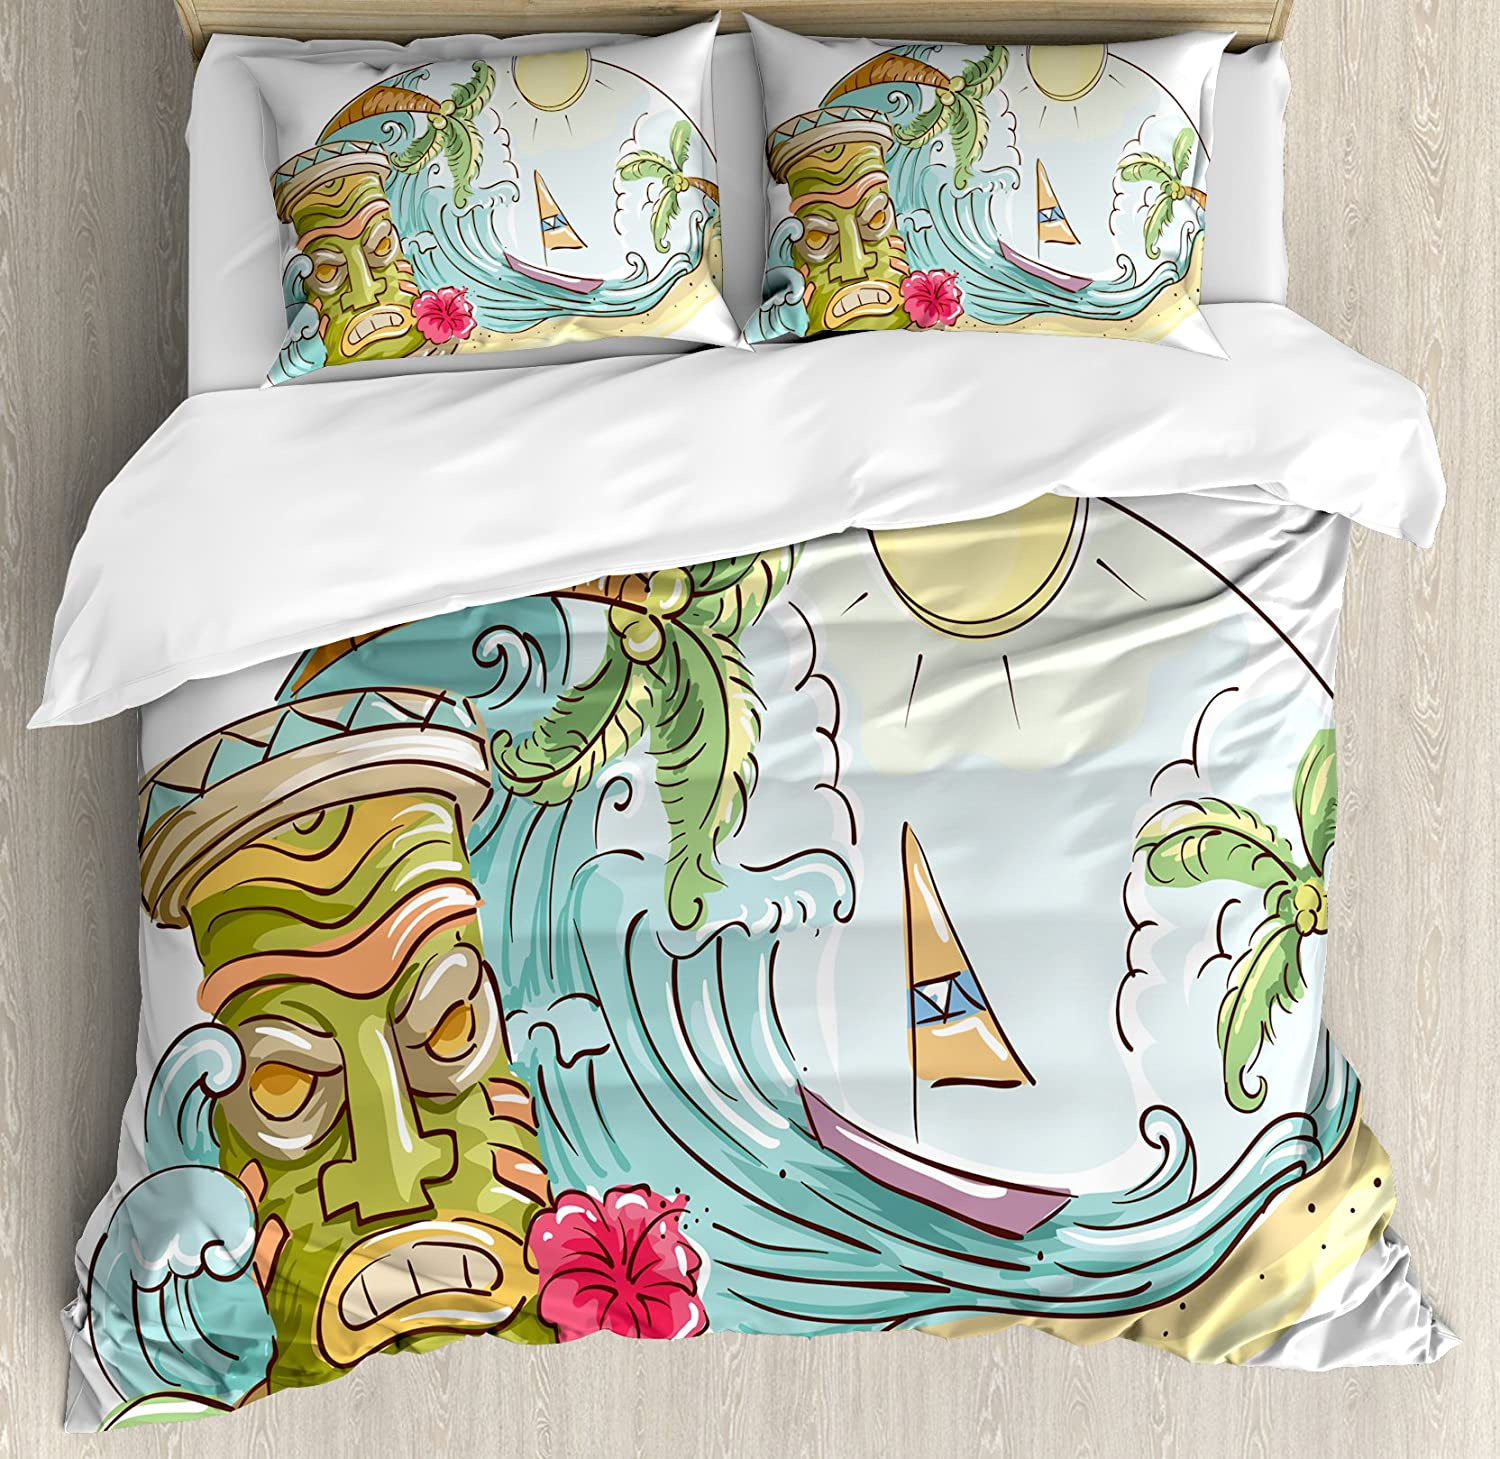 Ambesonne Tiki Bar Duvet Cover Set, Circular Frame with Tropical Accents Cartoon Beach Tiki Illustration Print, Decorative 3 Piece Bedding Set with 2 Pillow Shams, Queen Size, Pale Blue